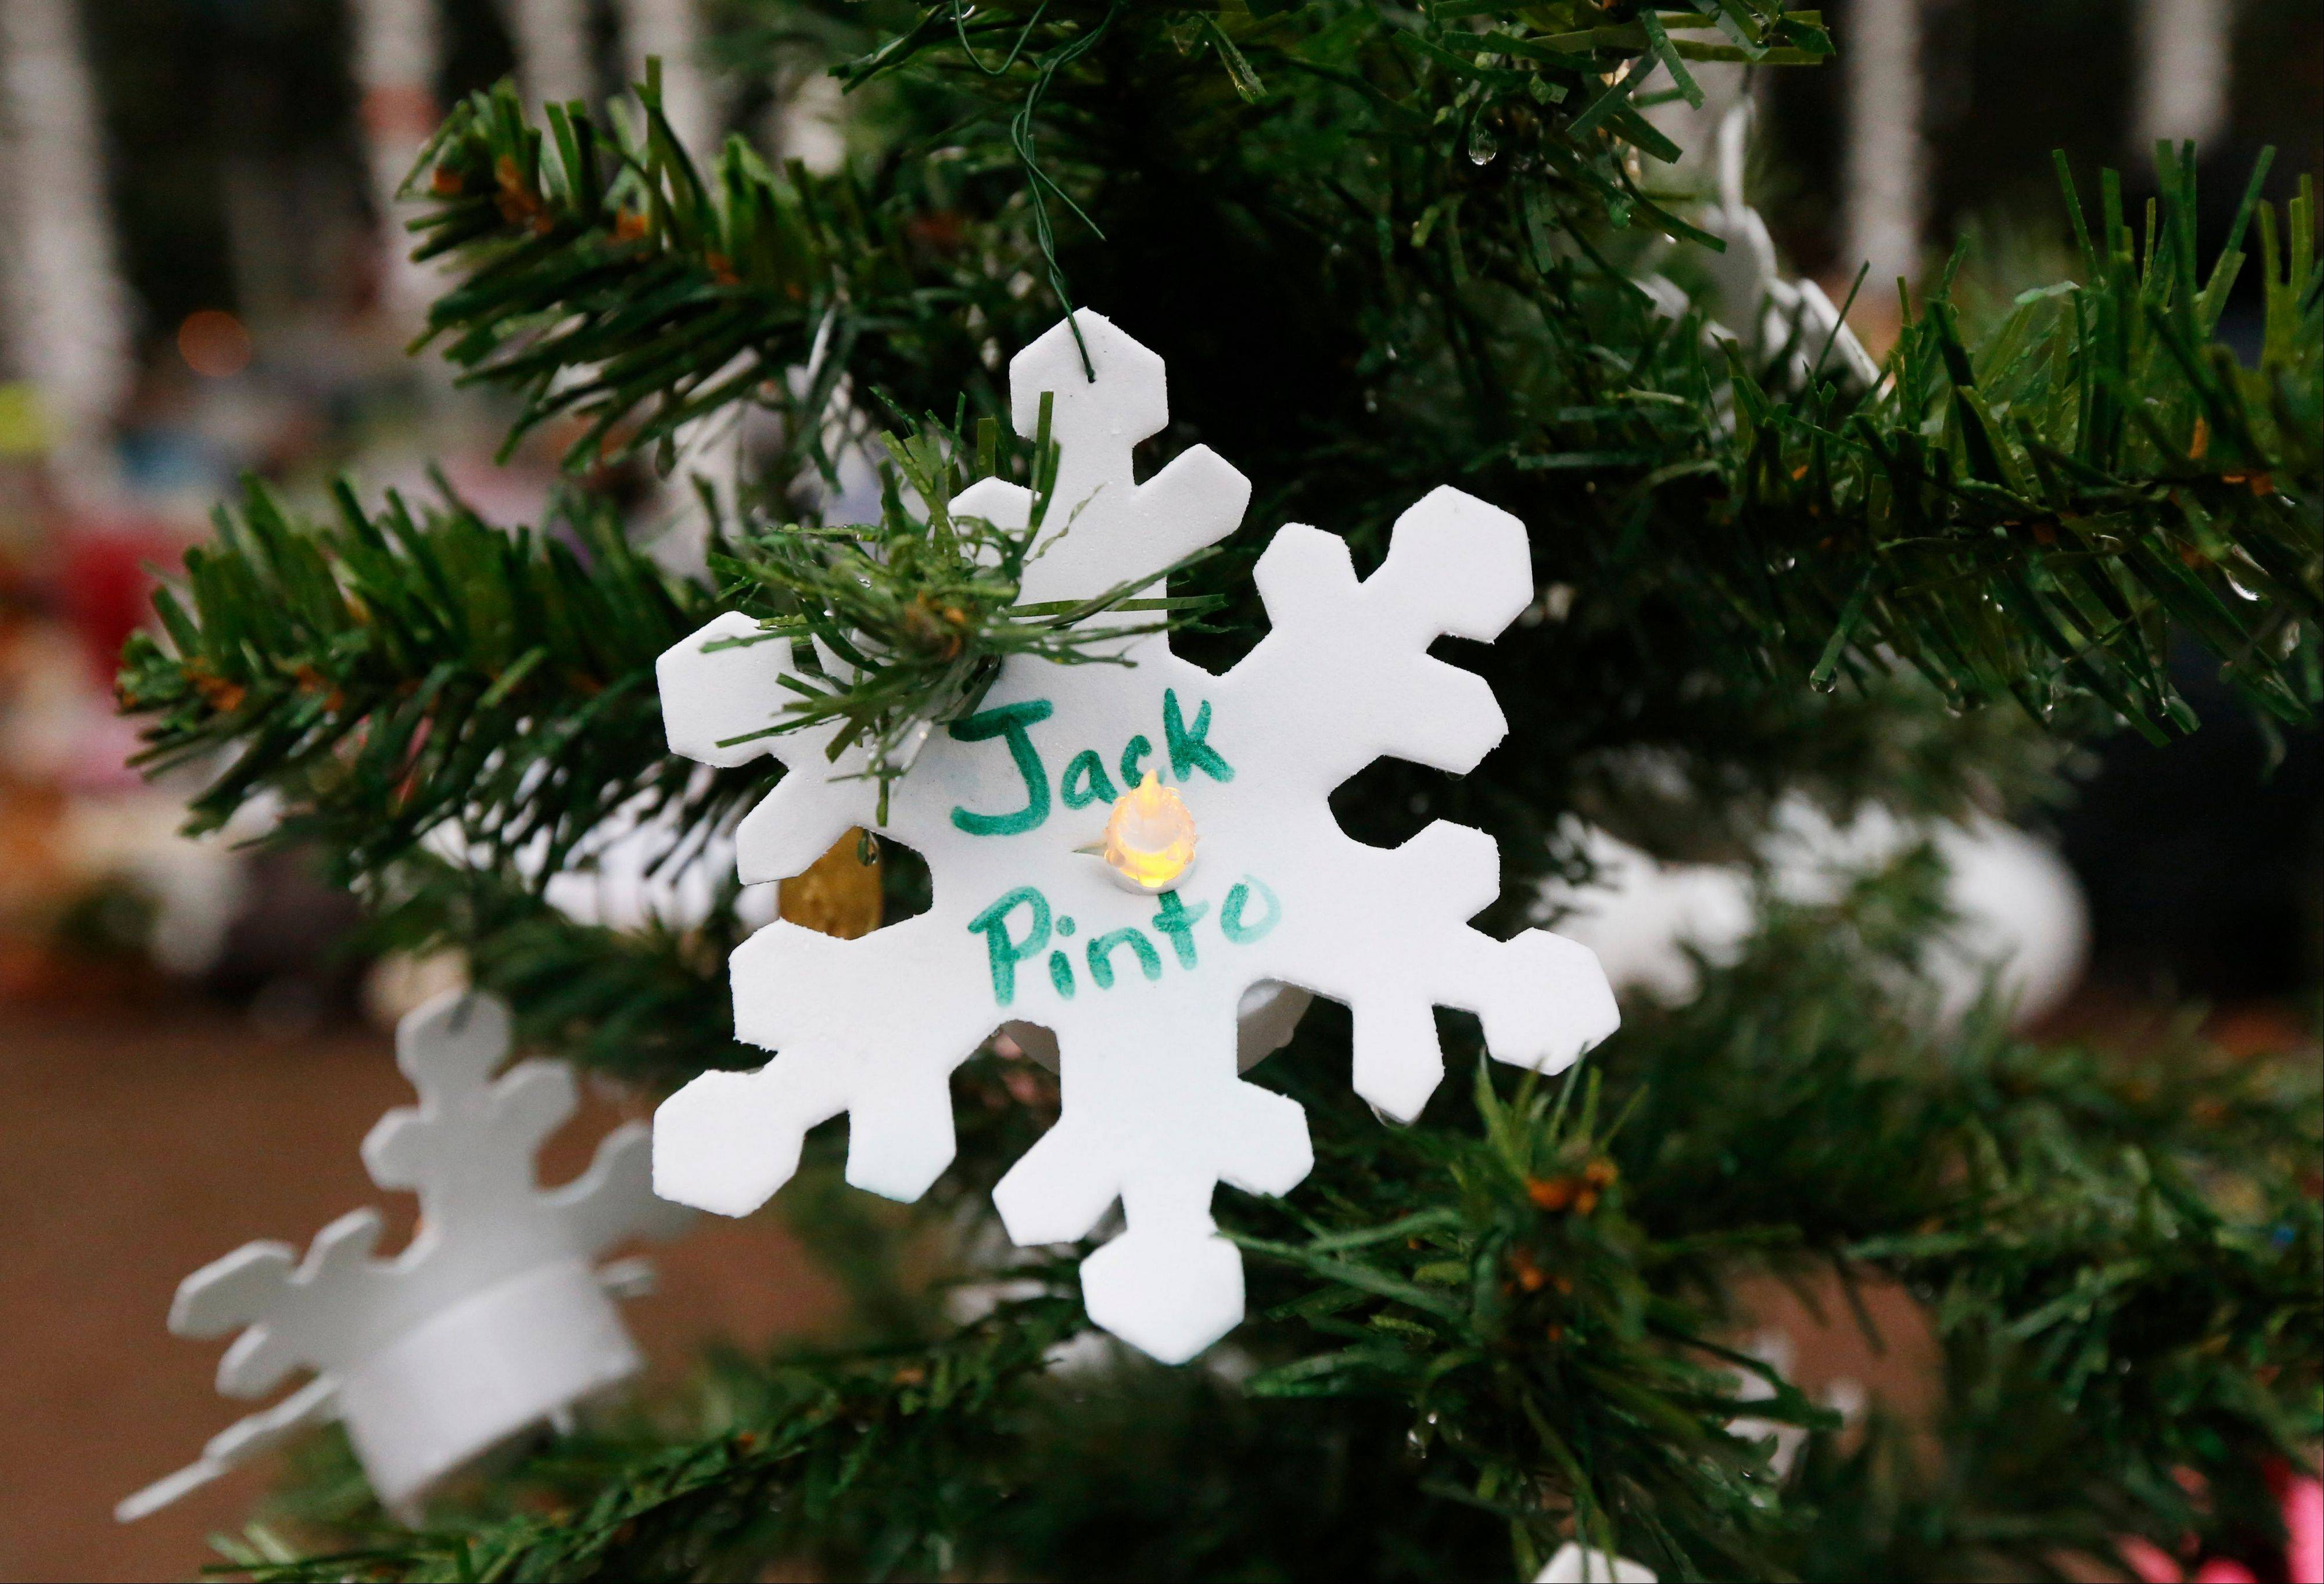 A snowflake ornament with the name of 6-year-old Jack Pinto hangs on a Christmas tree at a makeshift memorial in the Sandy Hook village of Newtown, Conn., Monday, Dec. 17, 2012, as the town mourns victims killed in Friday's school shooting. Pinto, who was killed Friday when gunman Adam Lanza opened fire inside the Sandy Hook Elementary School, will be buried Monday.